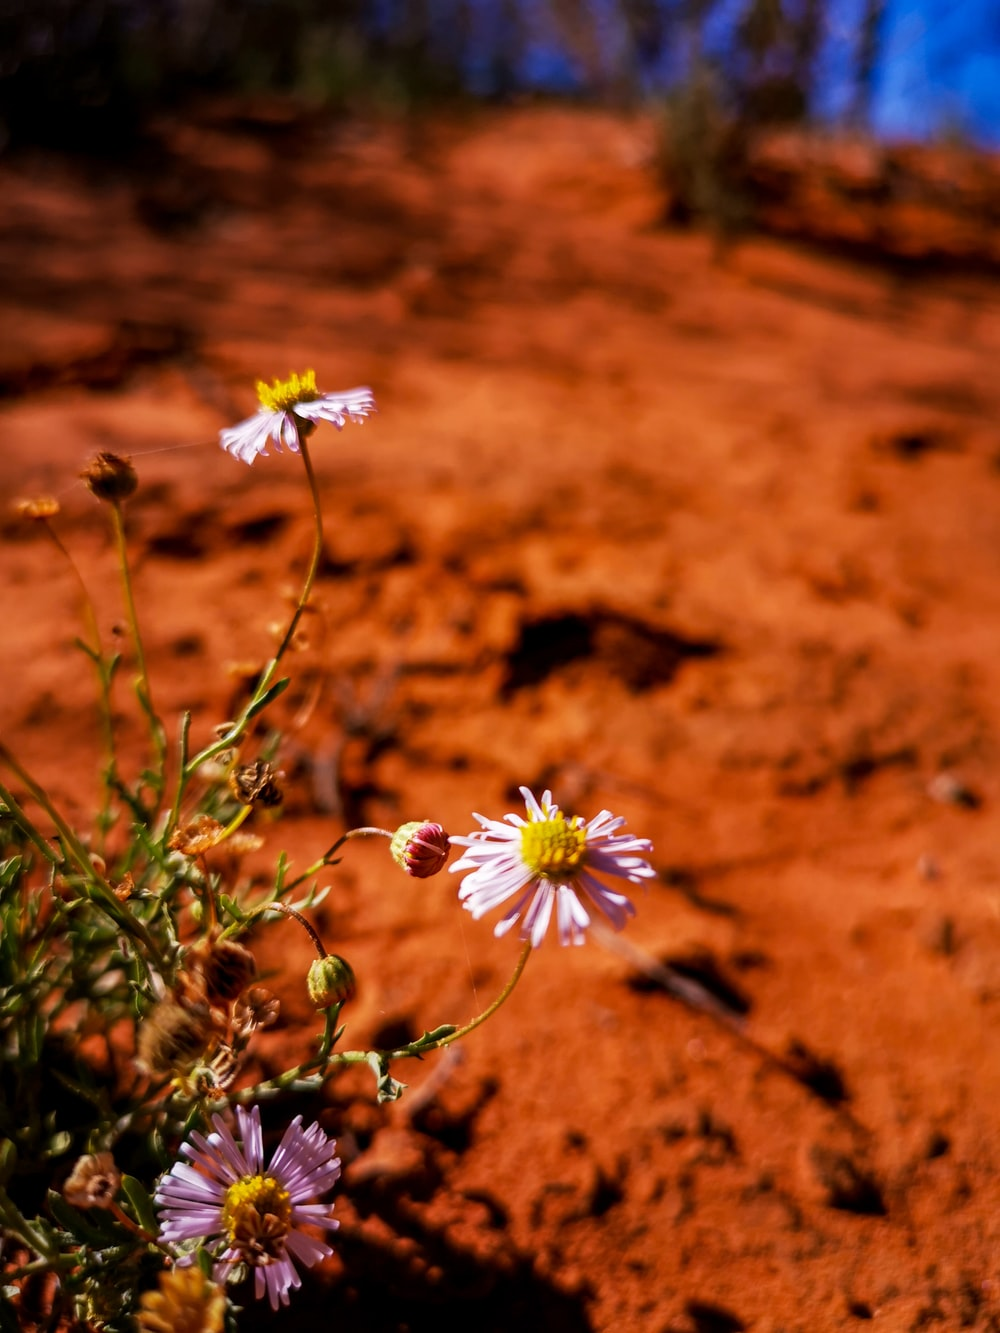 white and yellow flowers on brown soil